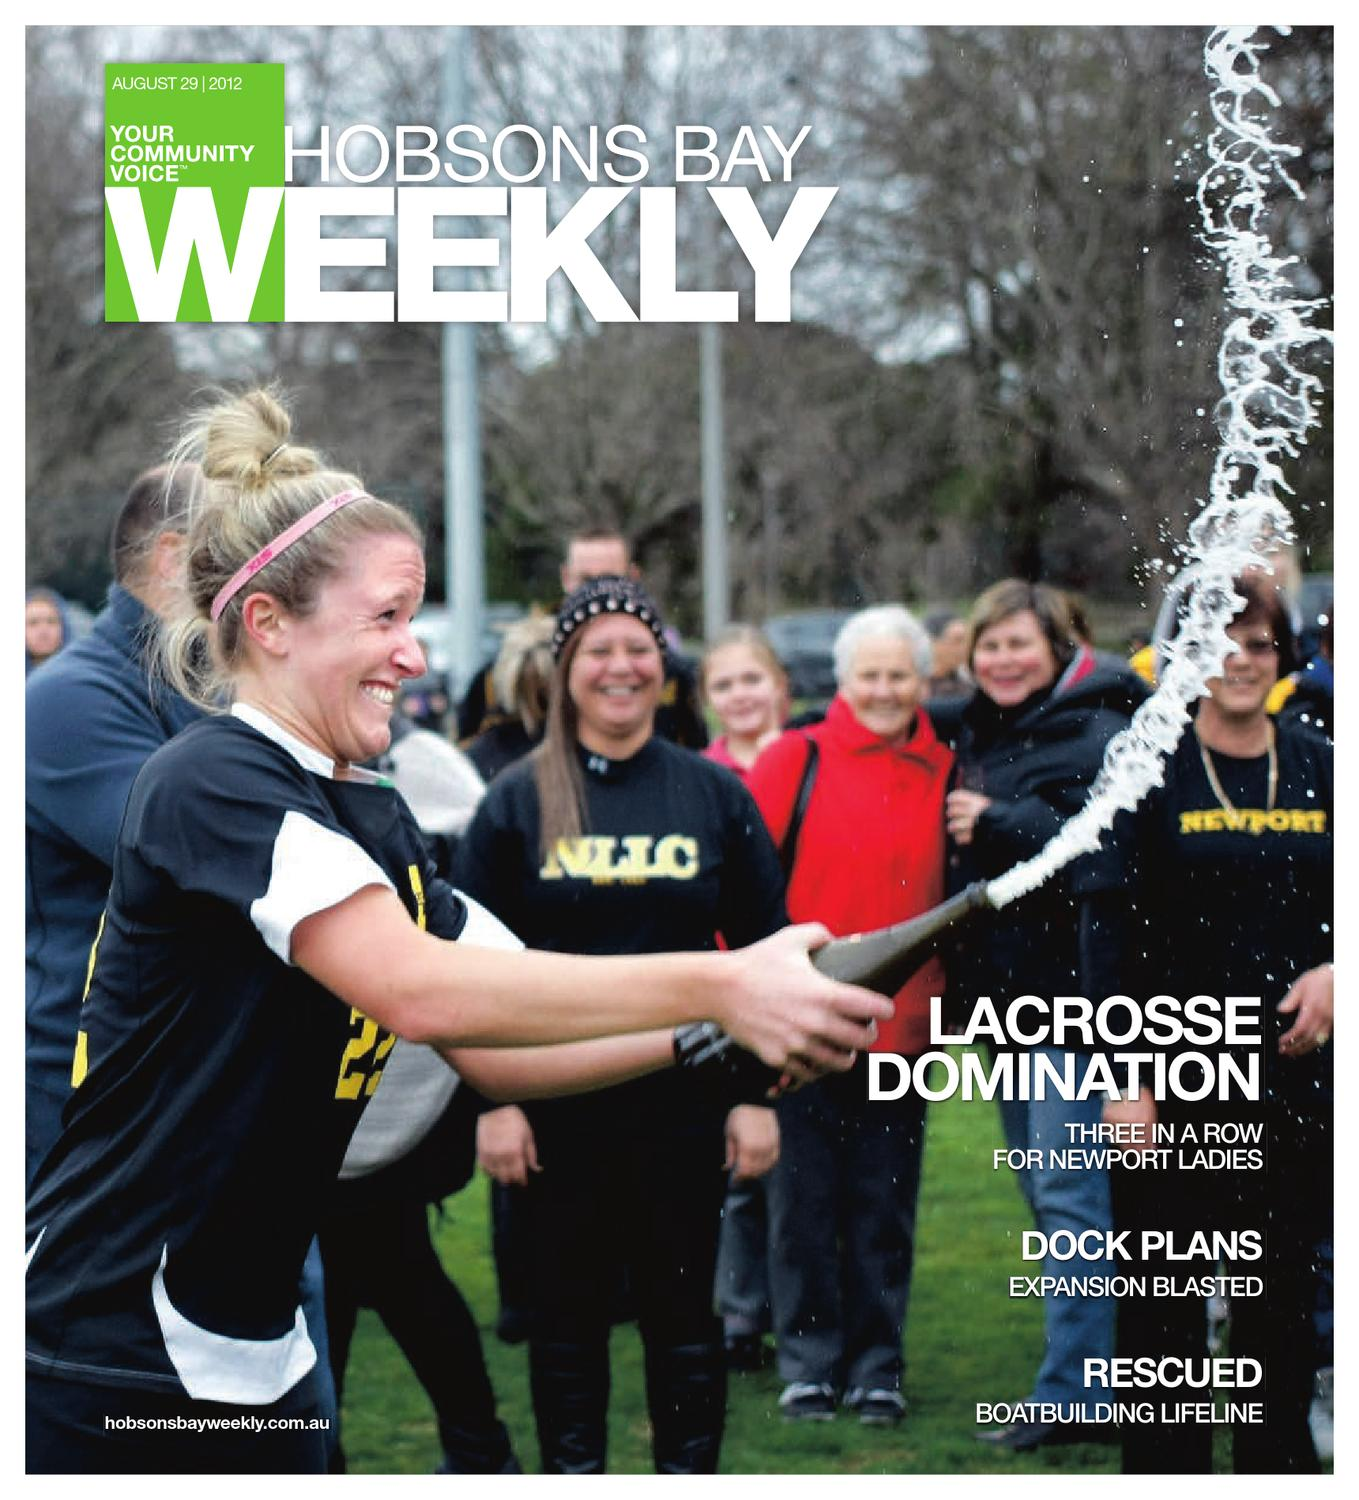 6abb23e8aa1 Hobsons Bay Weekly 29-08-12 by The Weekly Review - issuu